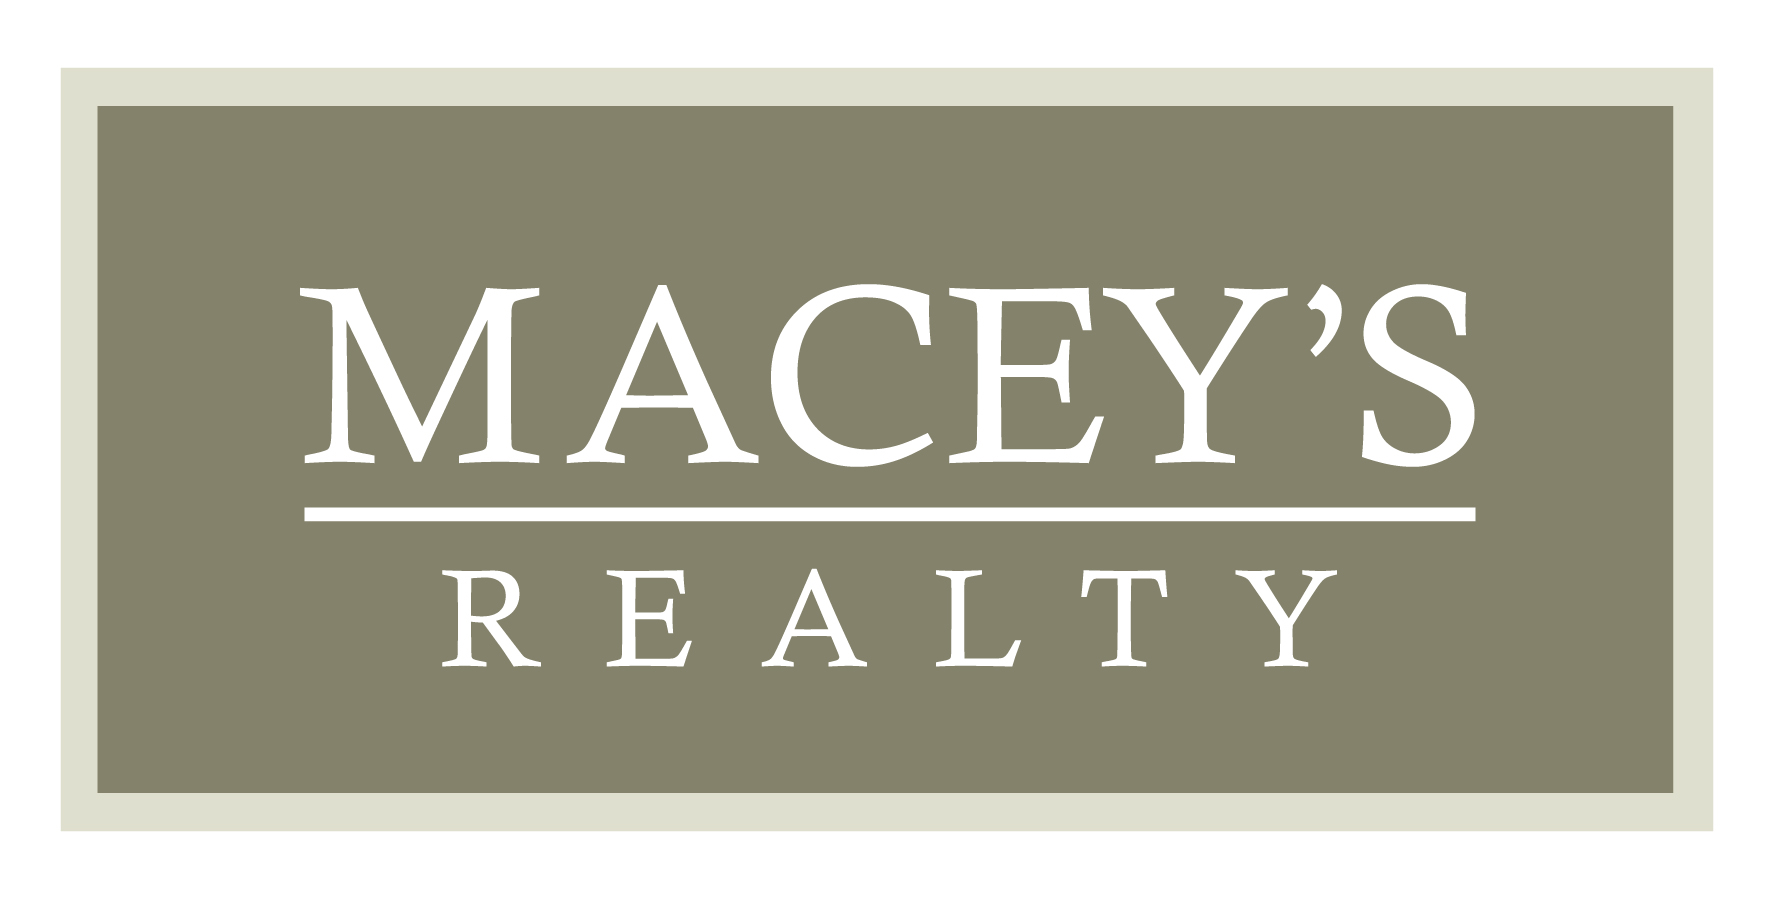 Macey's Realty